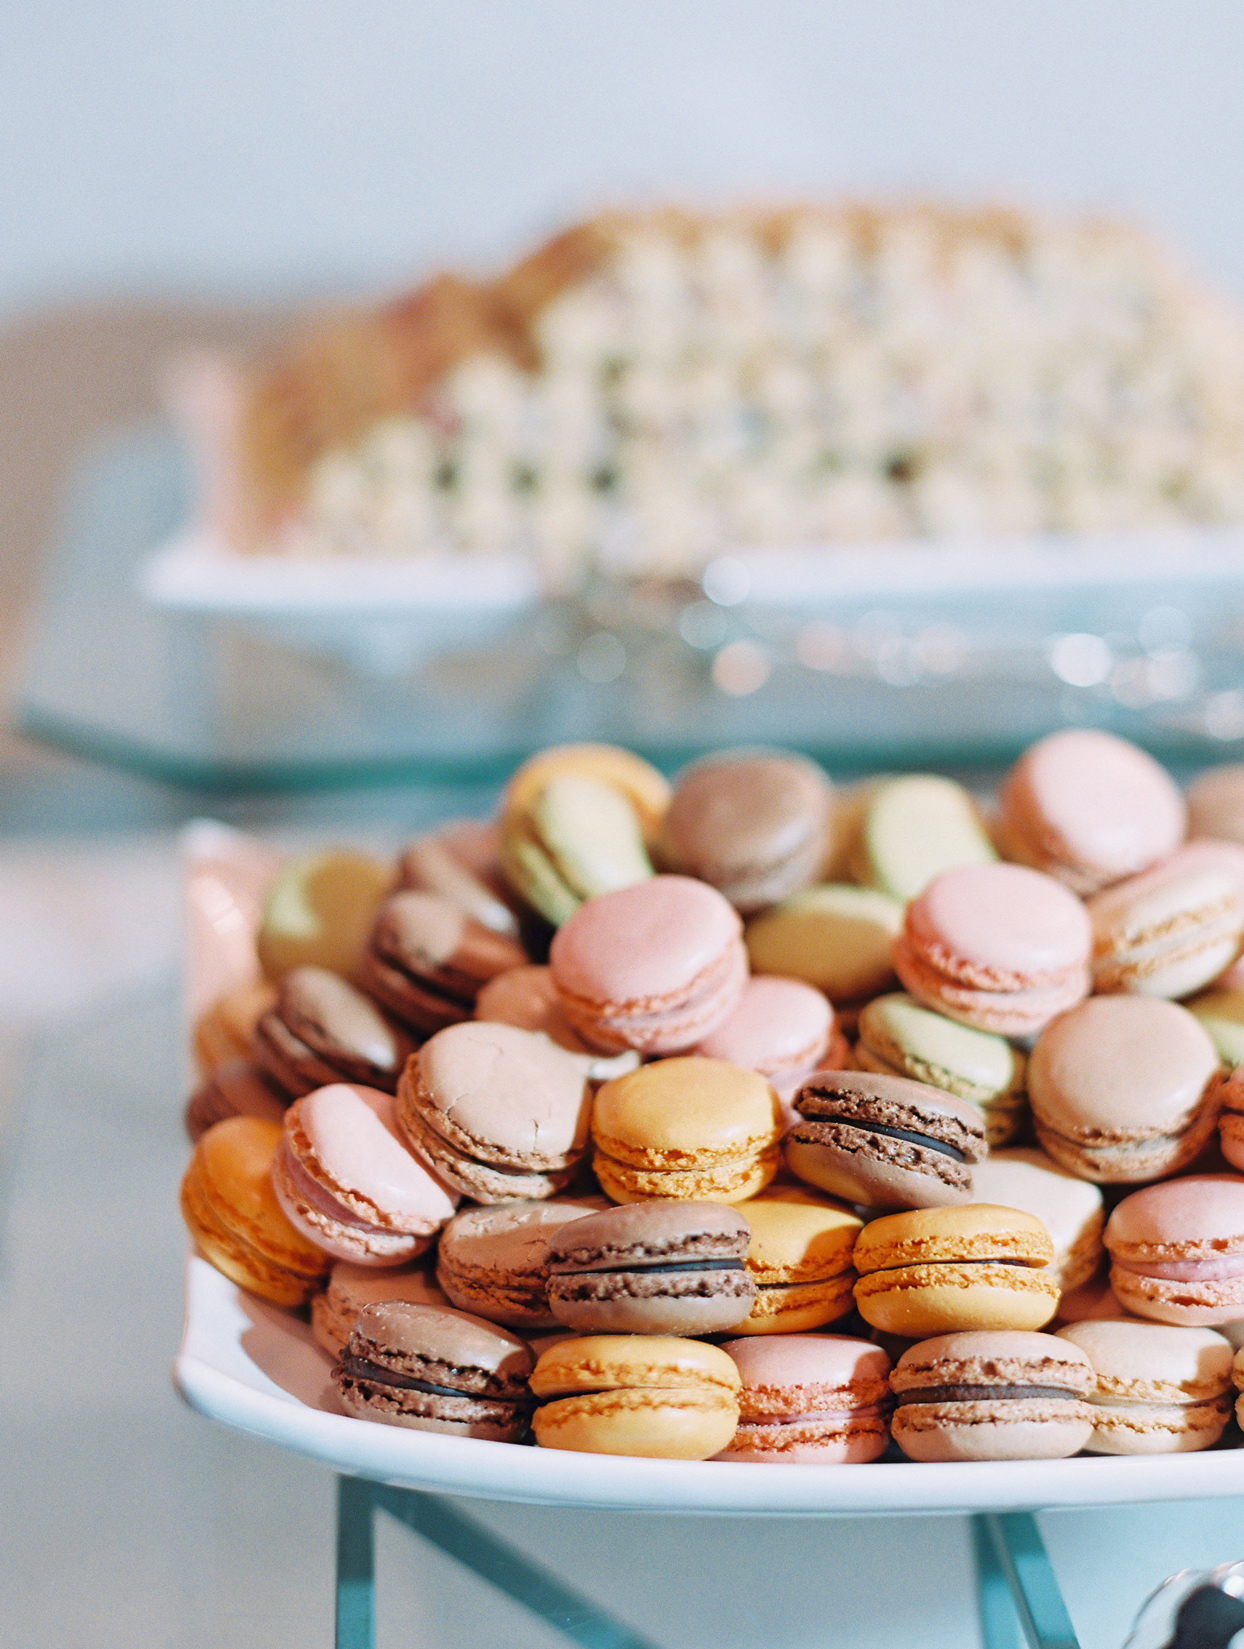 various colored macarons on serving tray